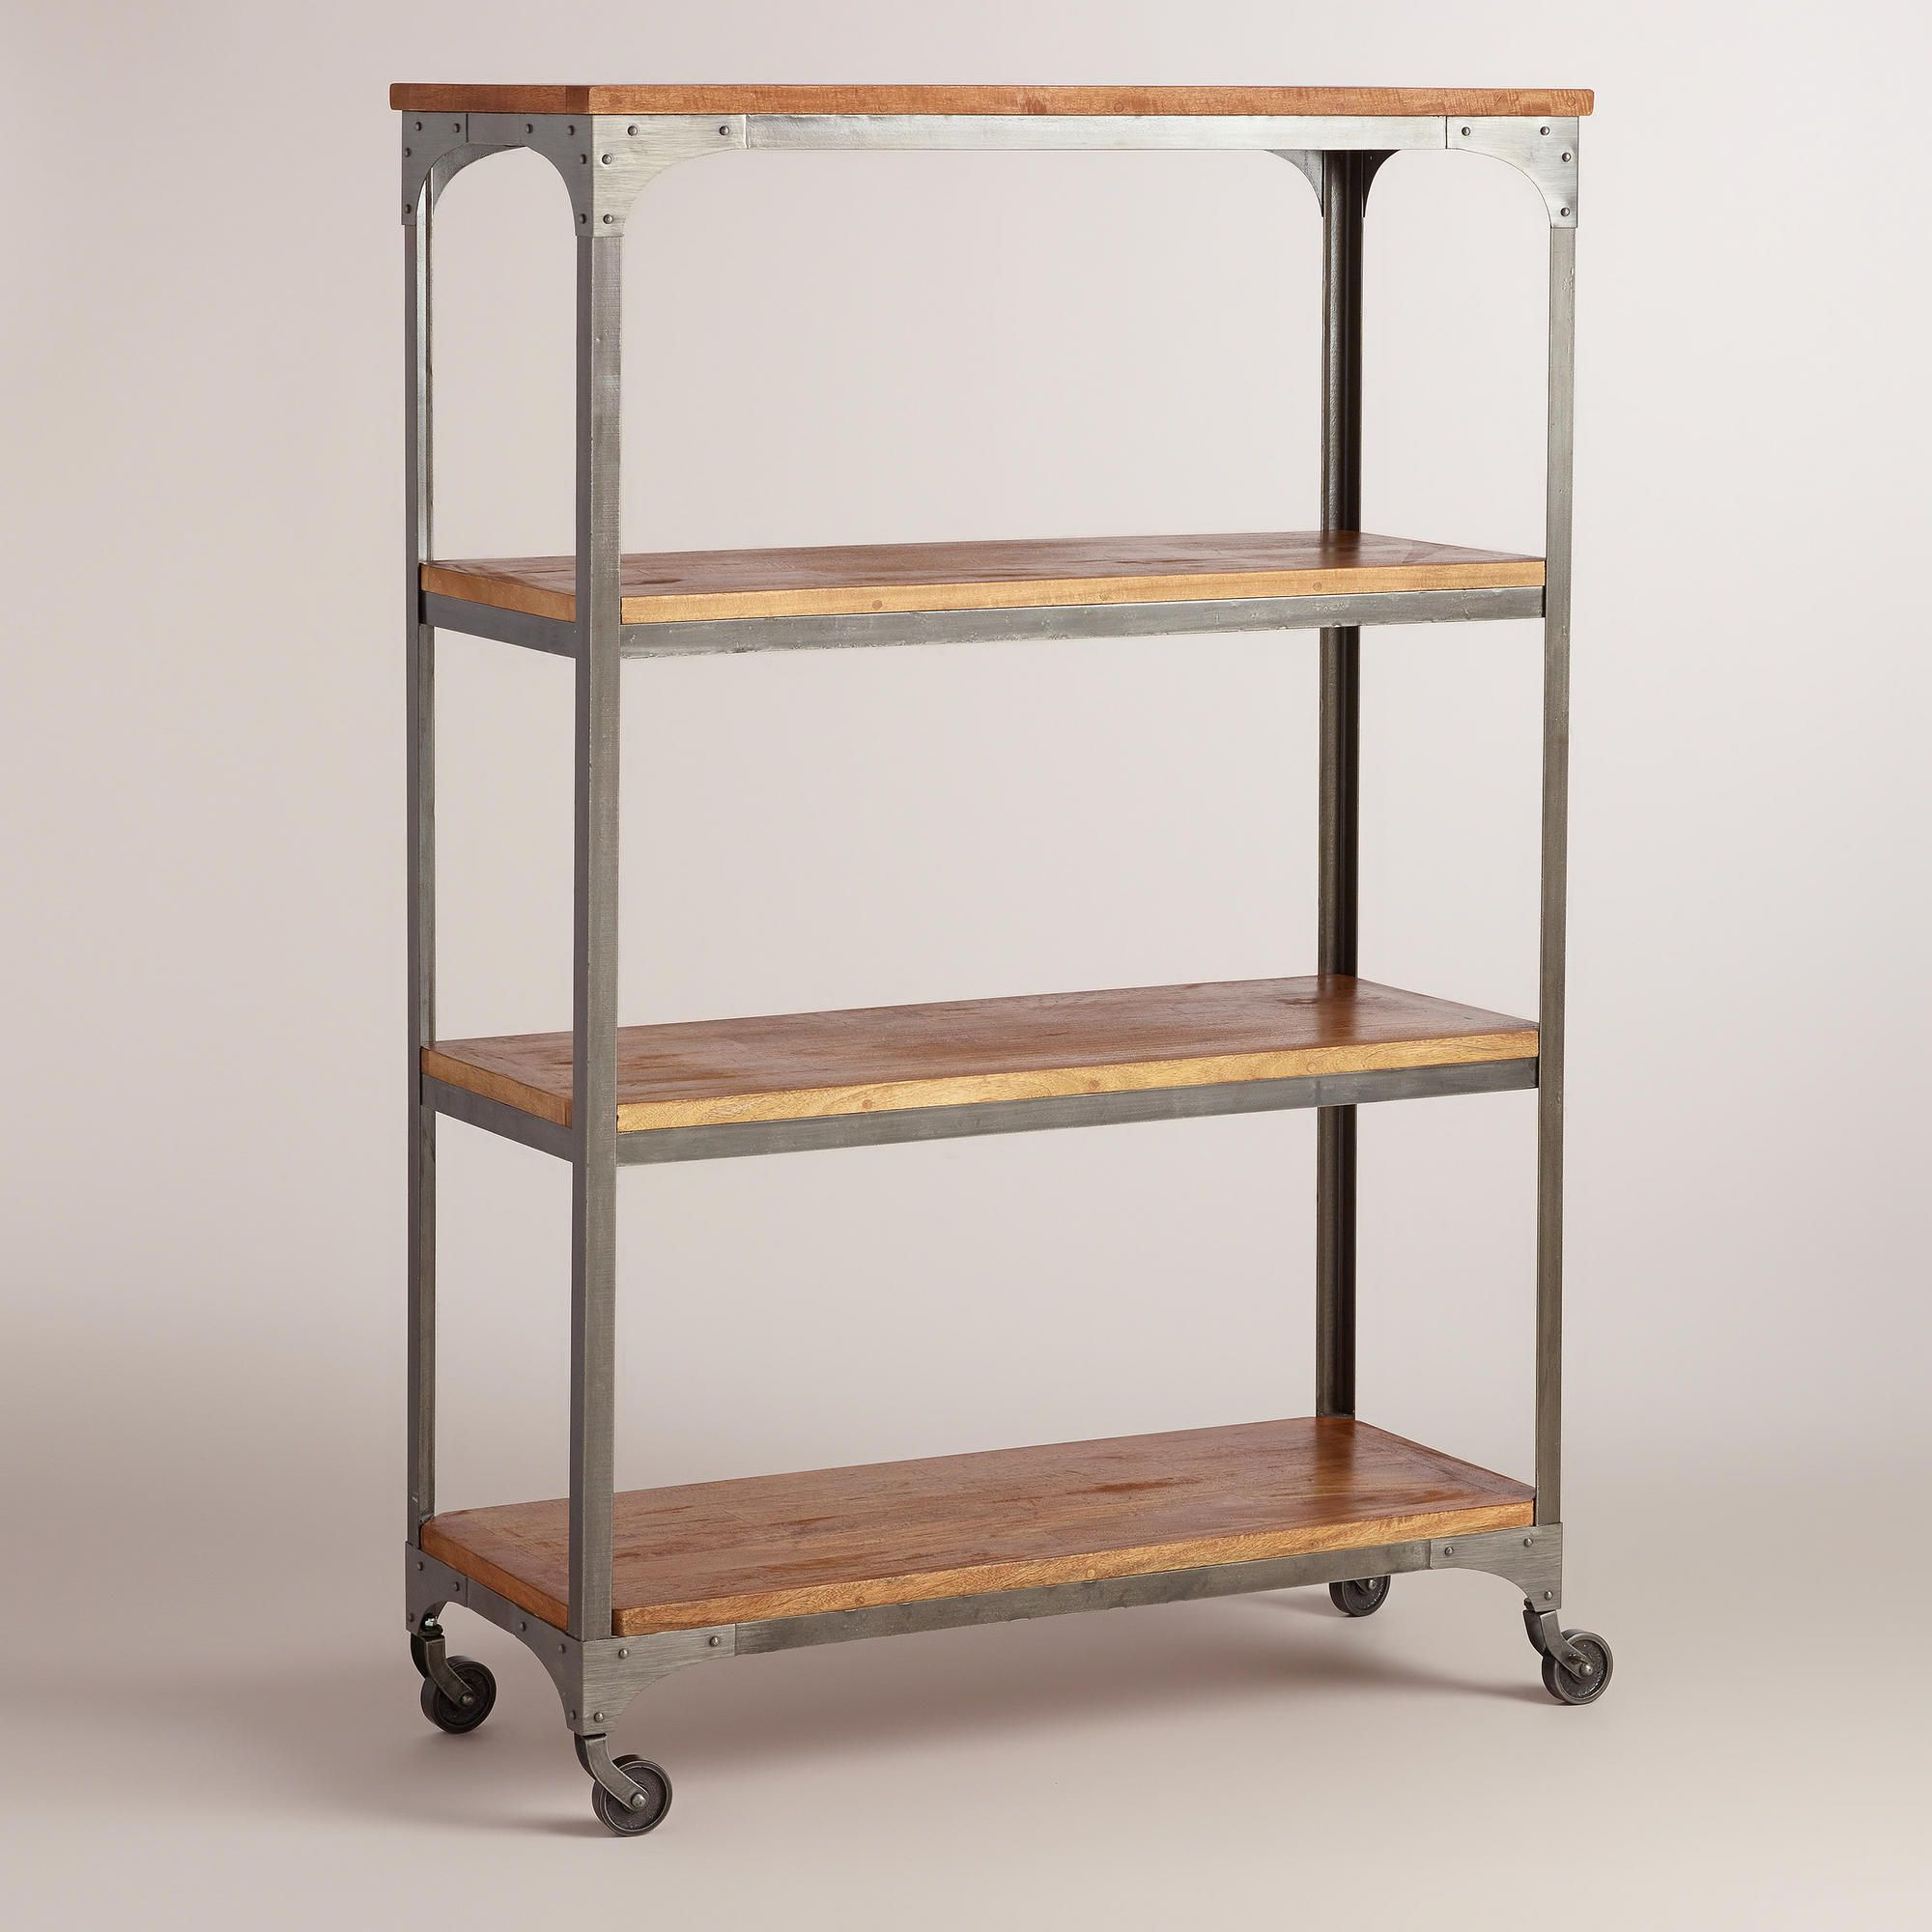 contemporary bookcase black tier shelf or storage frame bookcases walnut products wood antique organizer metal